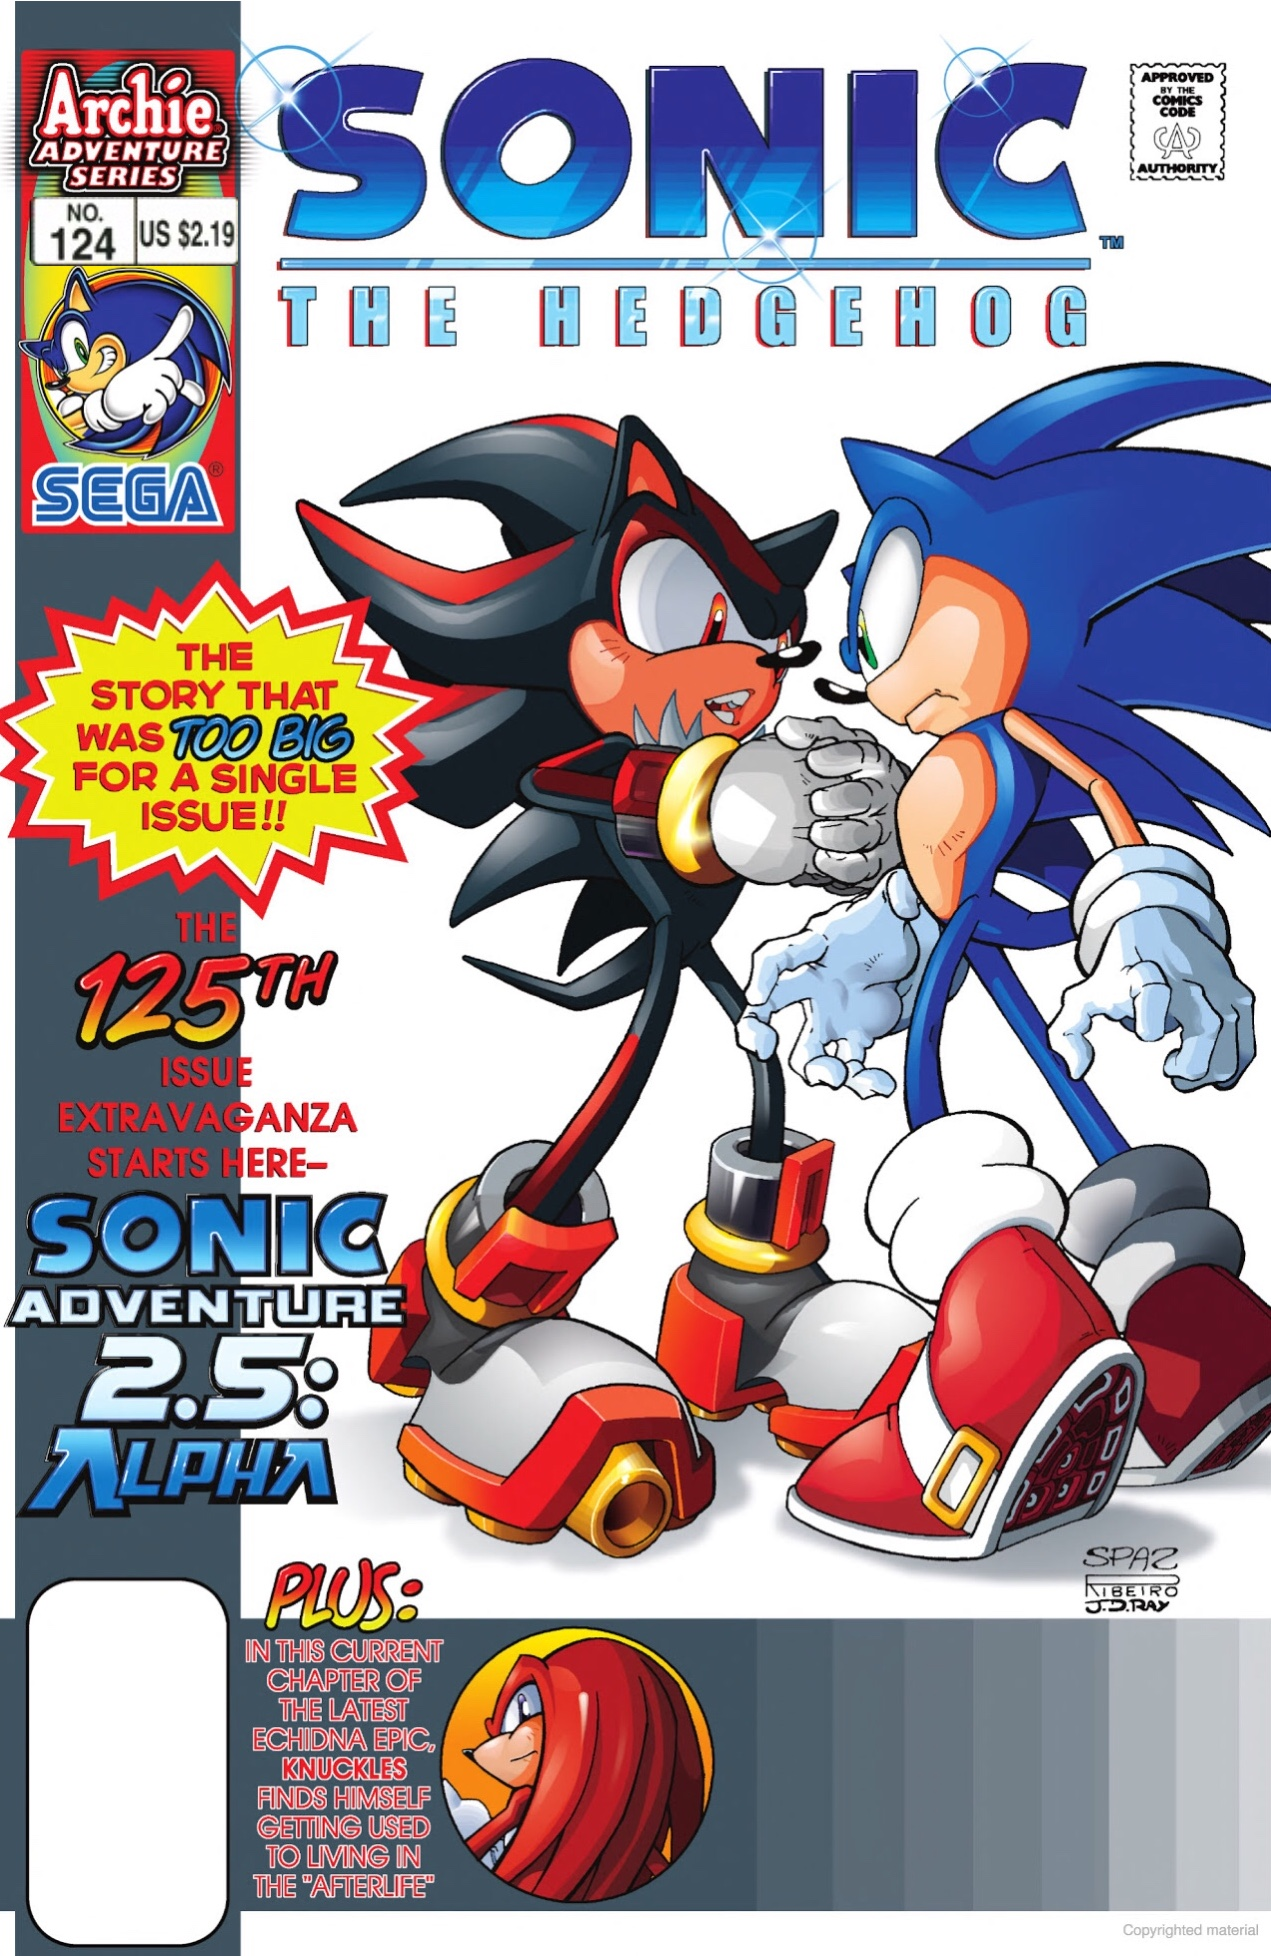 Archie Sonic the Hedgehog Issue 124